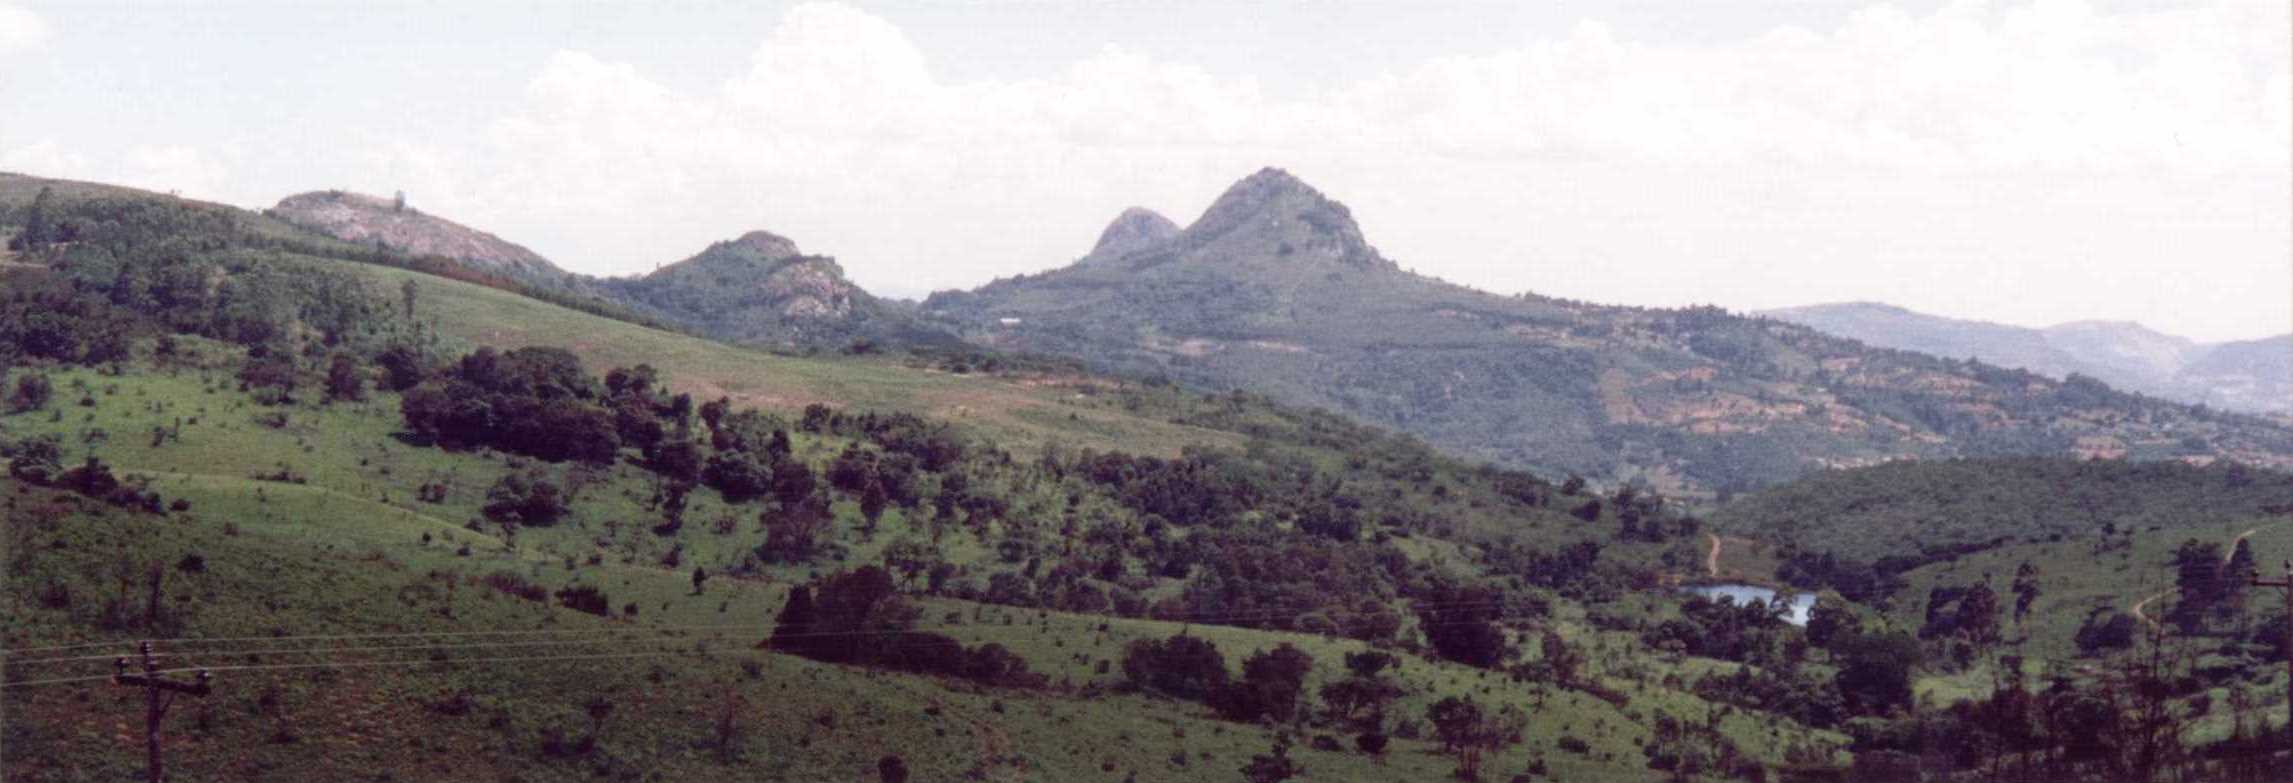 Camel's hump, Vumba mountains, Eastern Rhodesia